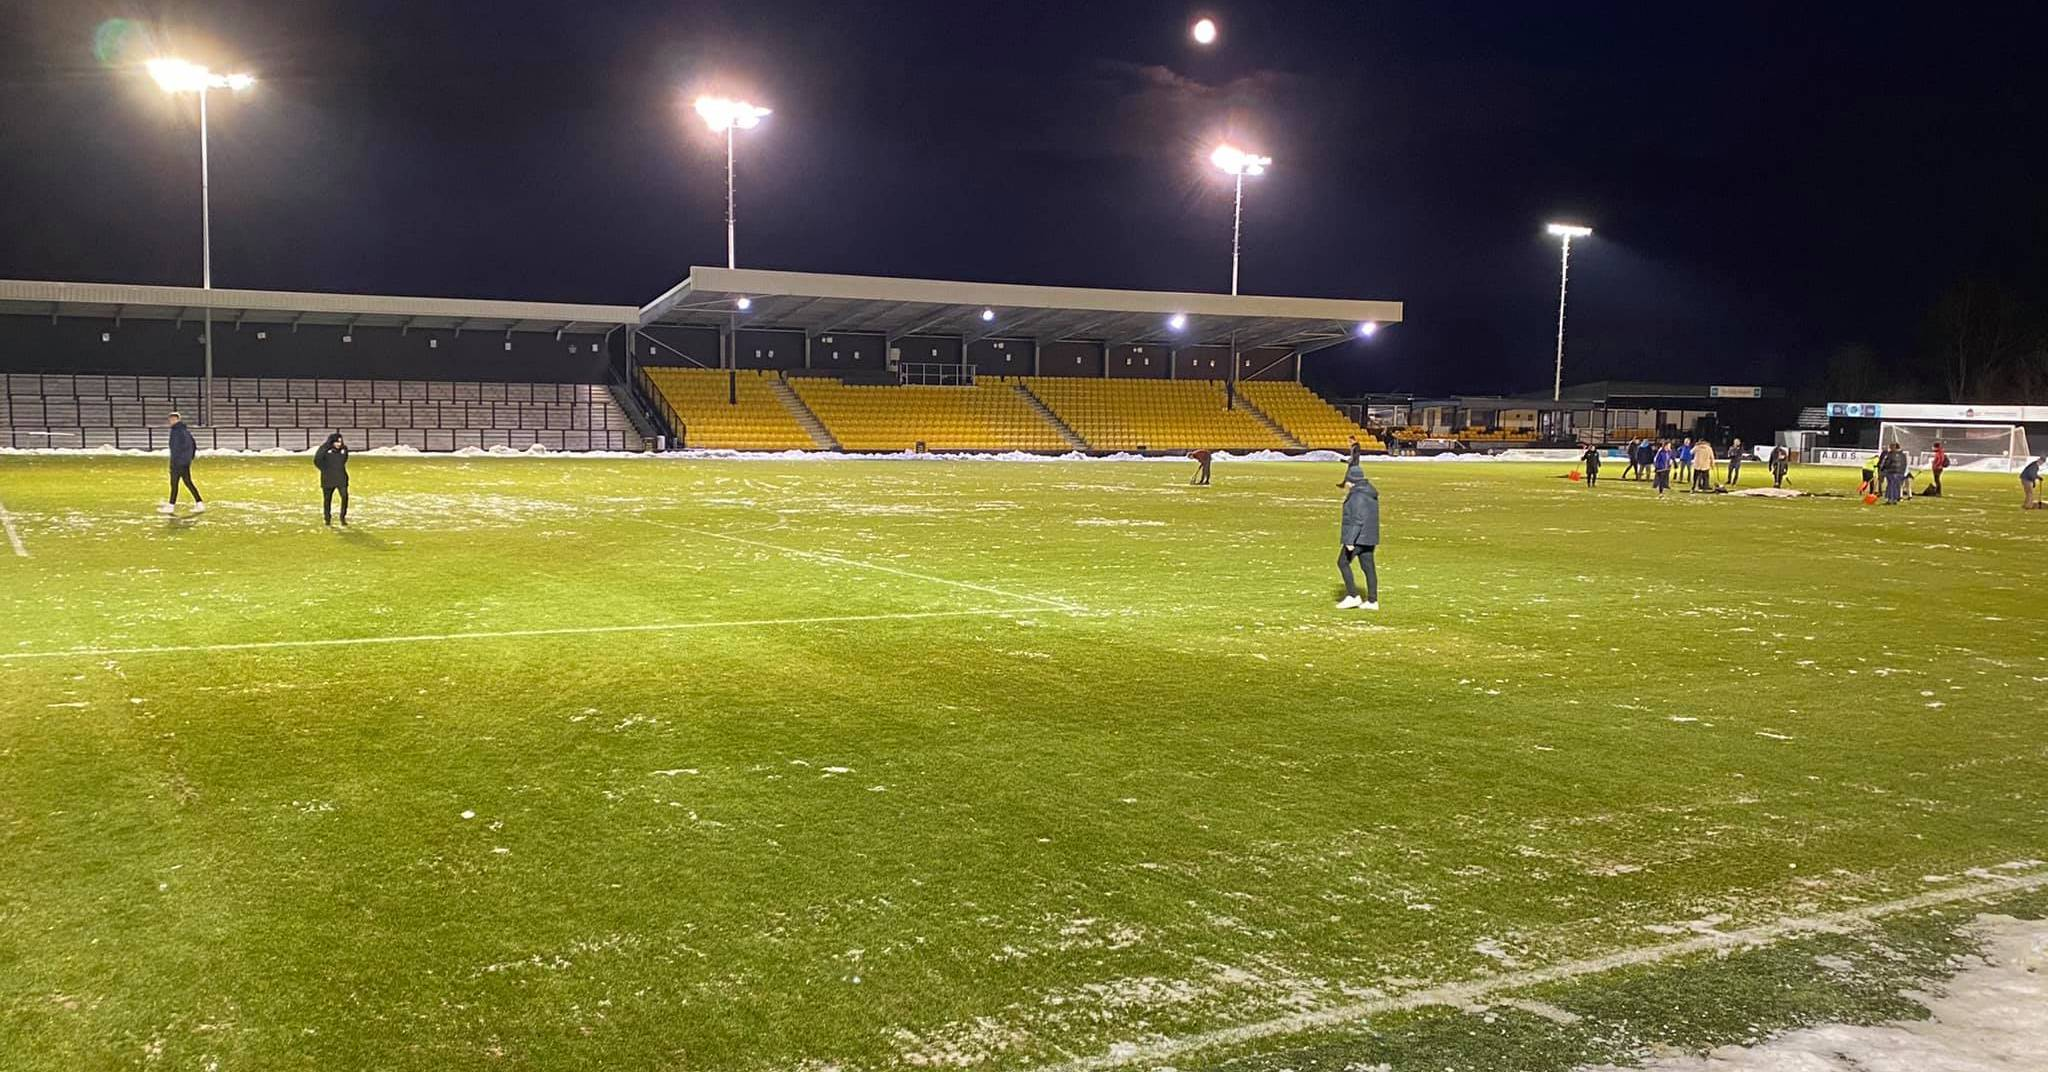 Frustration as Harrogate Town game abandoned after 10 minutes